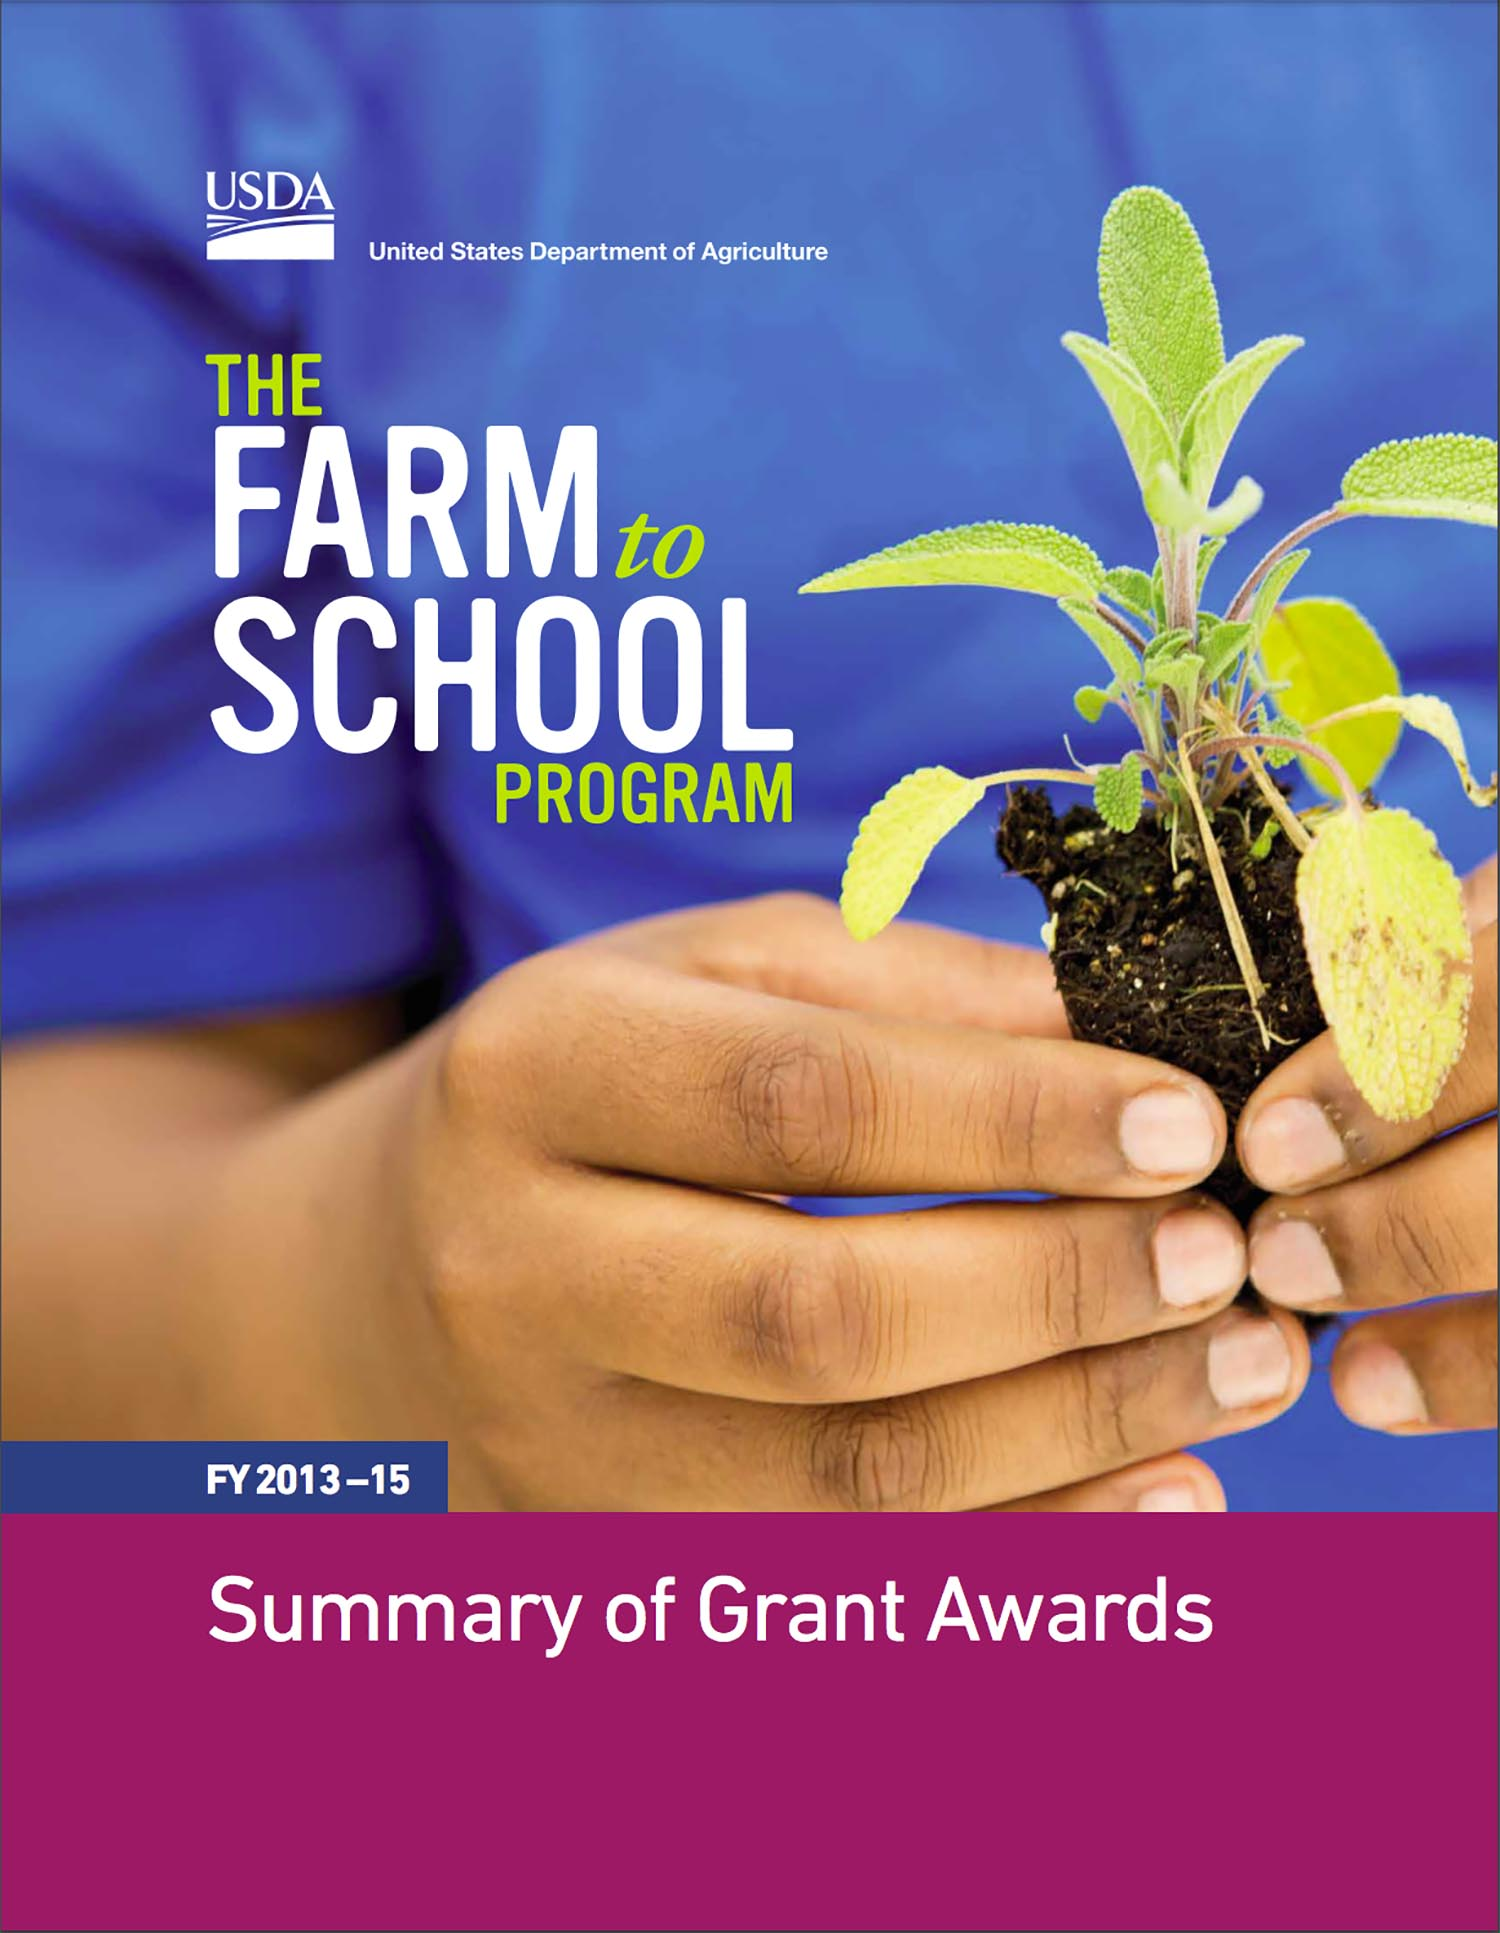 US Department of Agriculture - Built and implemented systems for monitoring grantee progress and measuring results of a multi-million dollar nationwide Farm to School grant program